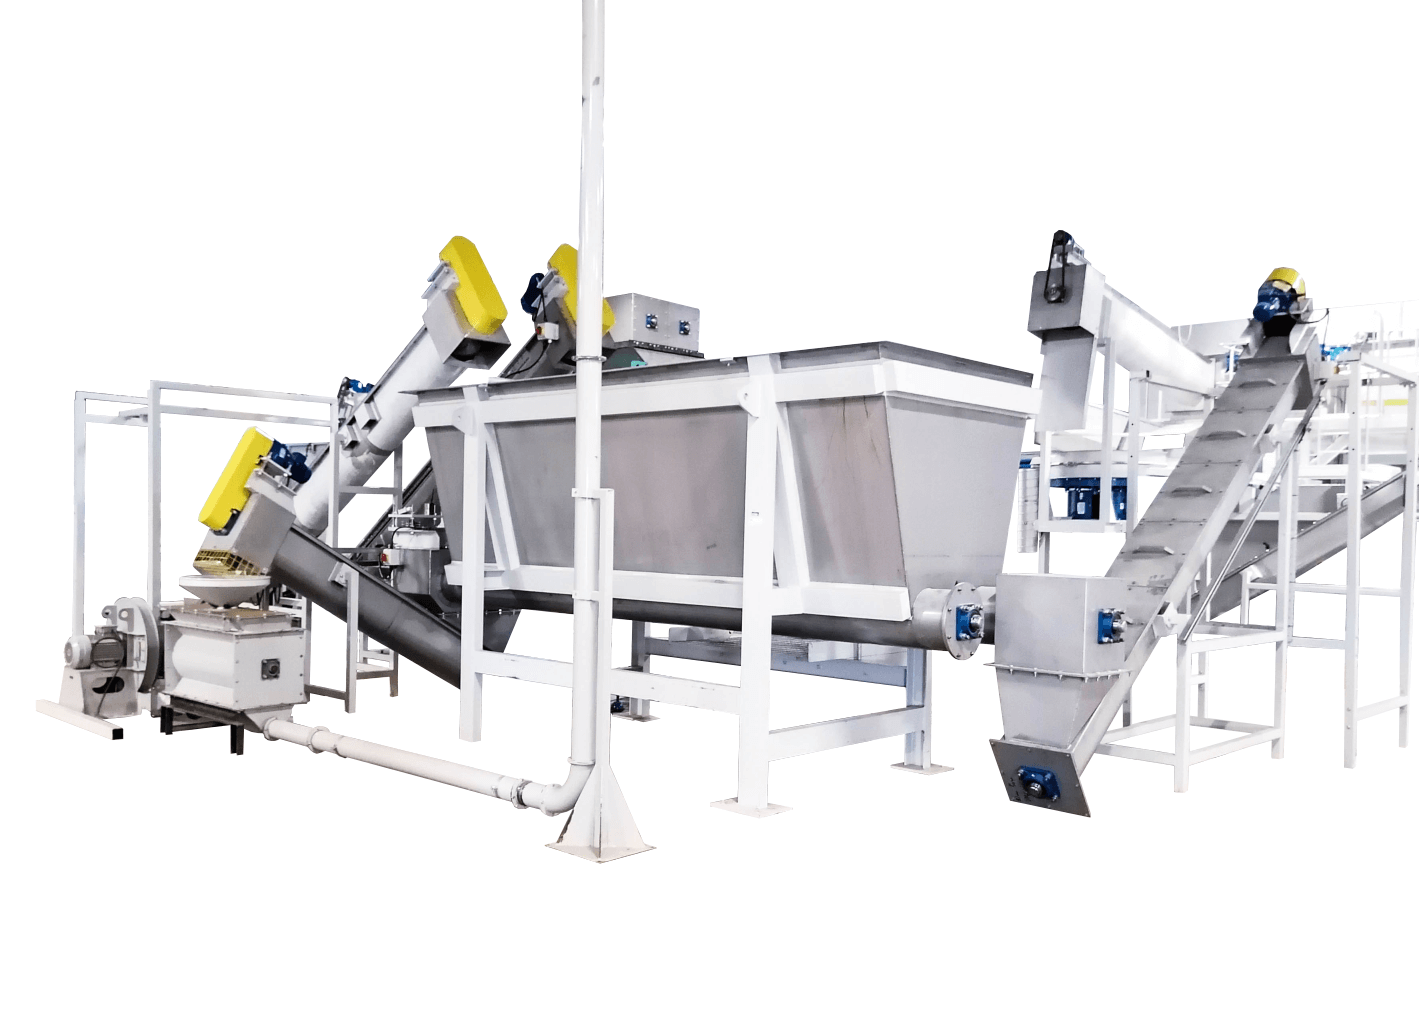 material in feed hopper